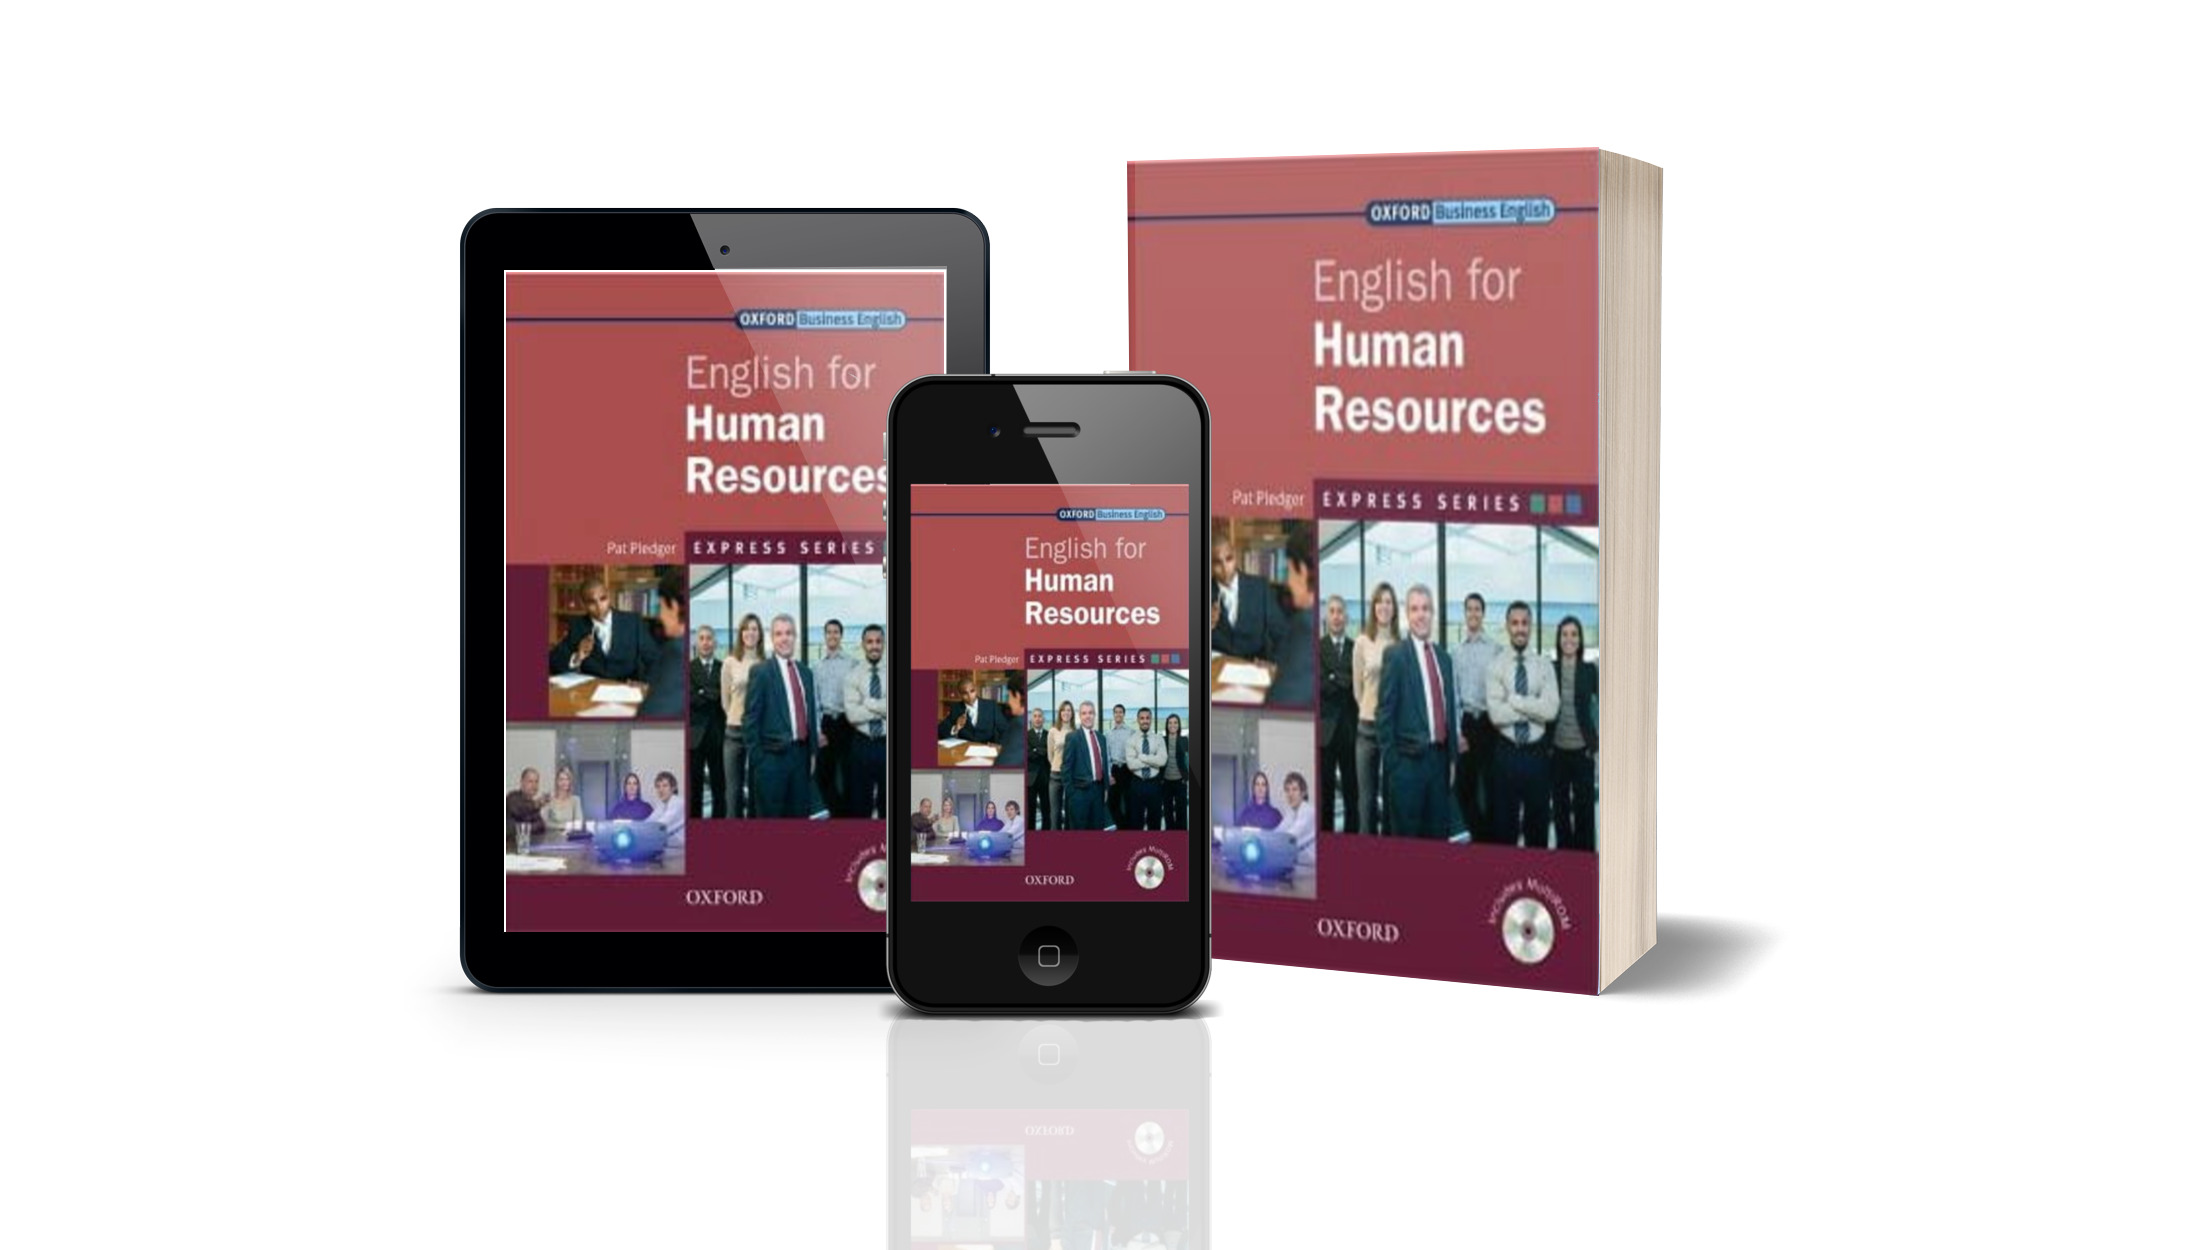 BOOK: ENGLISH FOR HUMAN RESOURCE - OXFORD